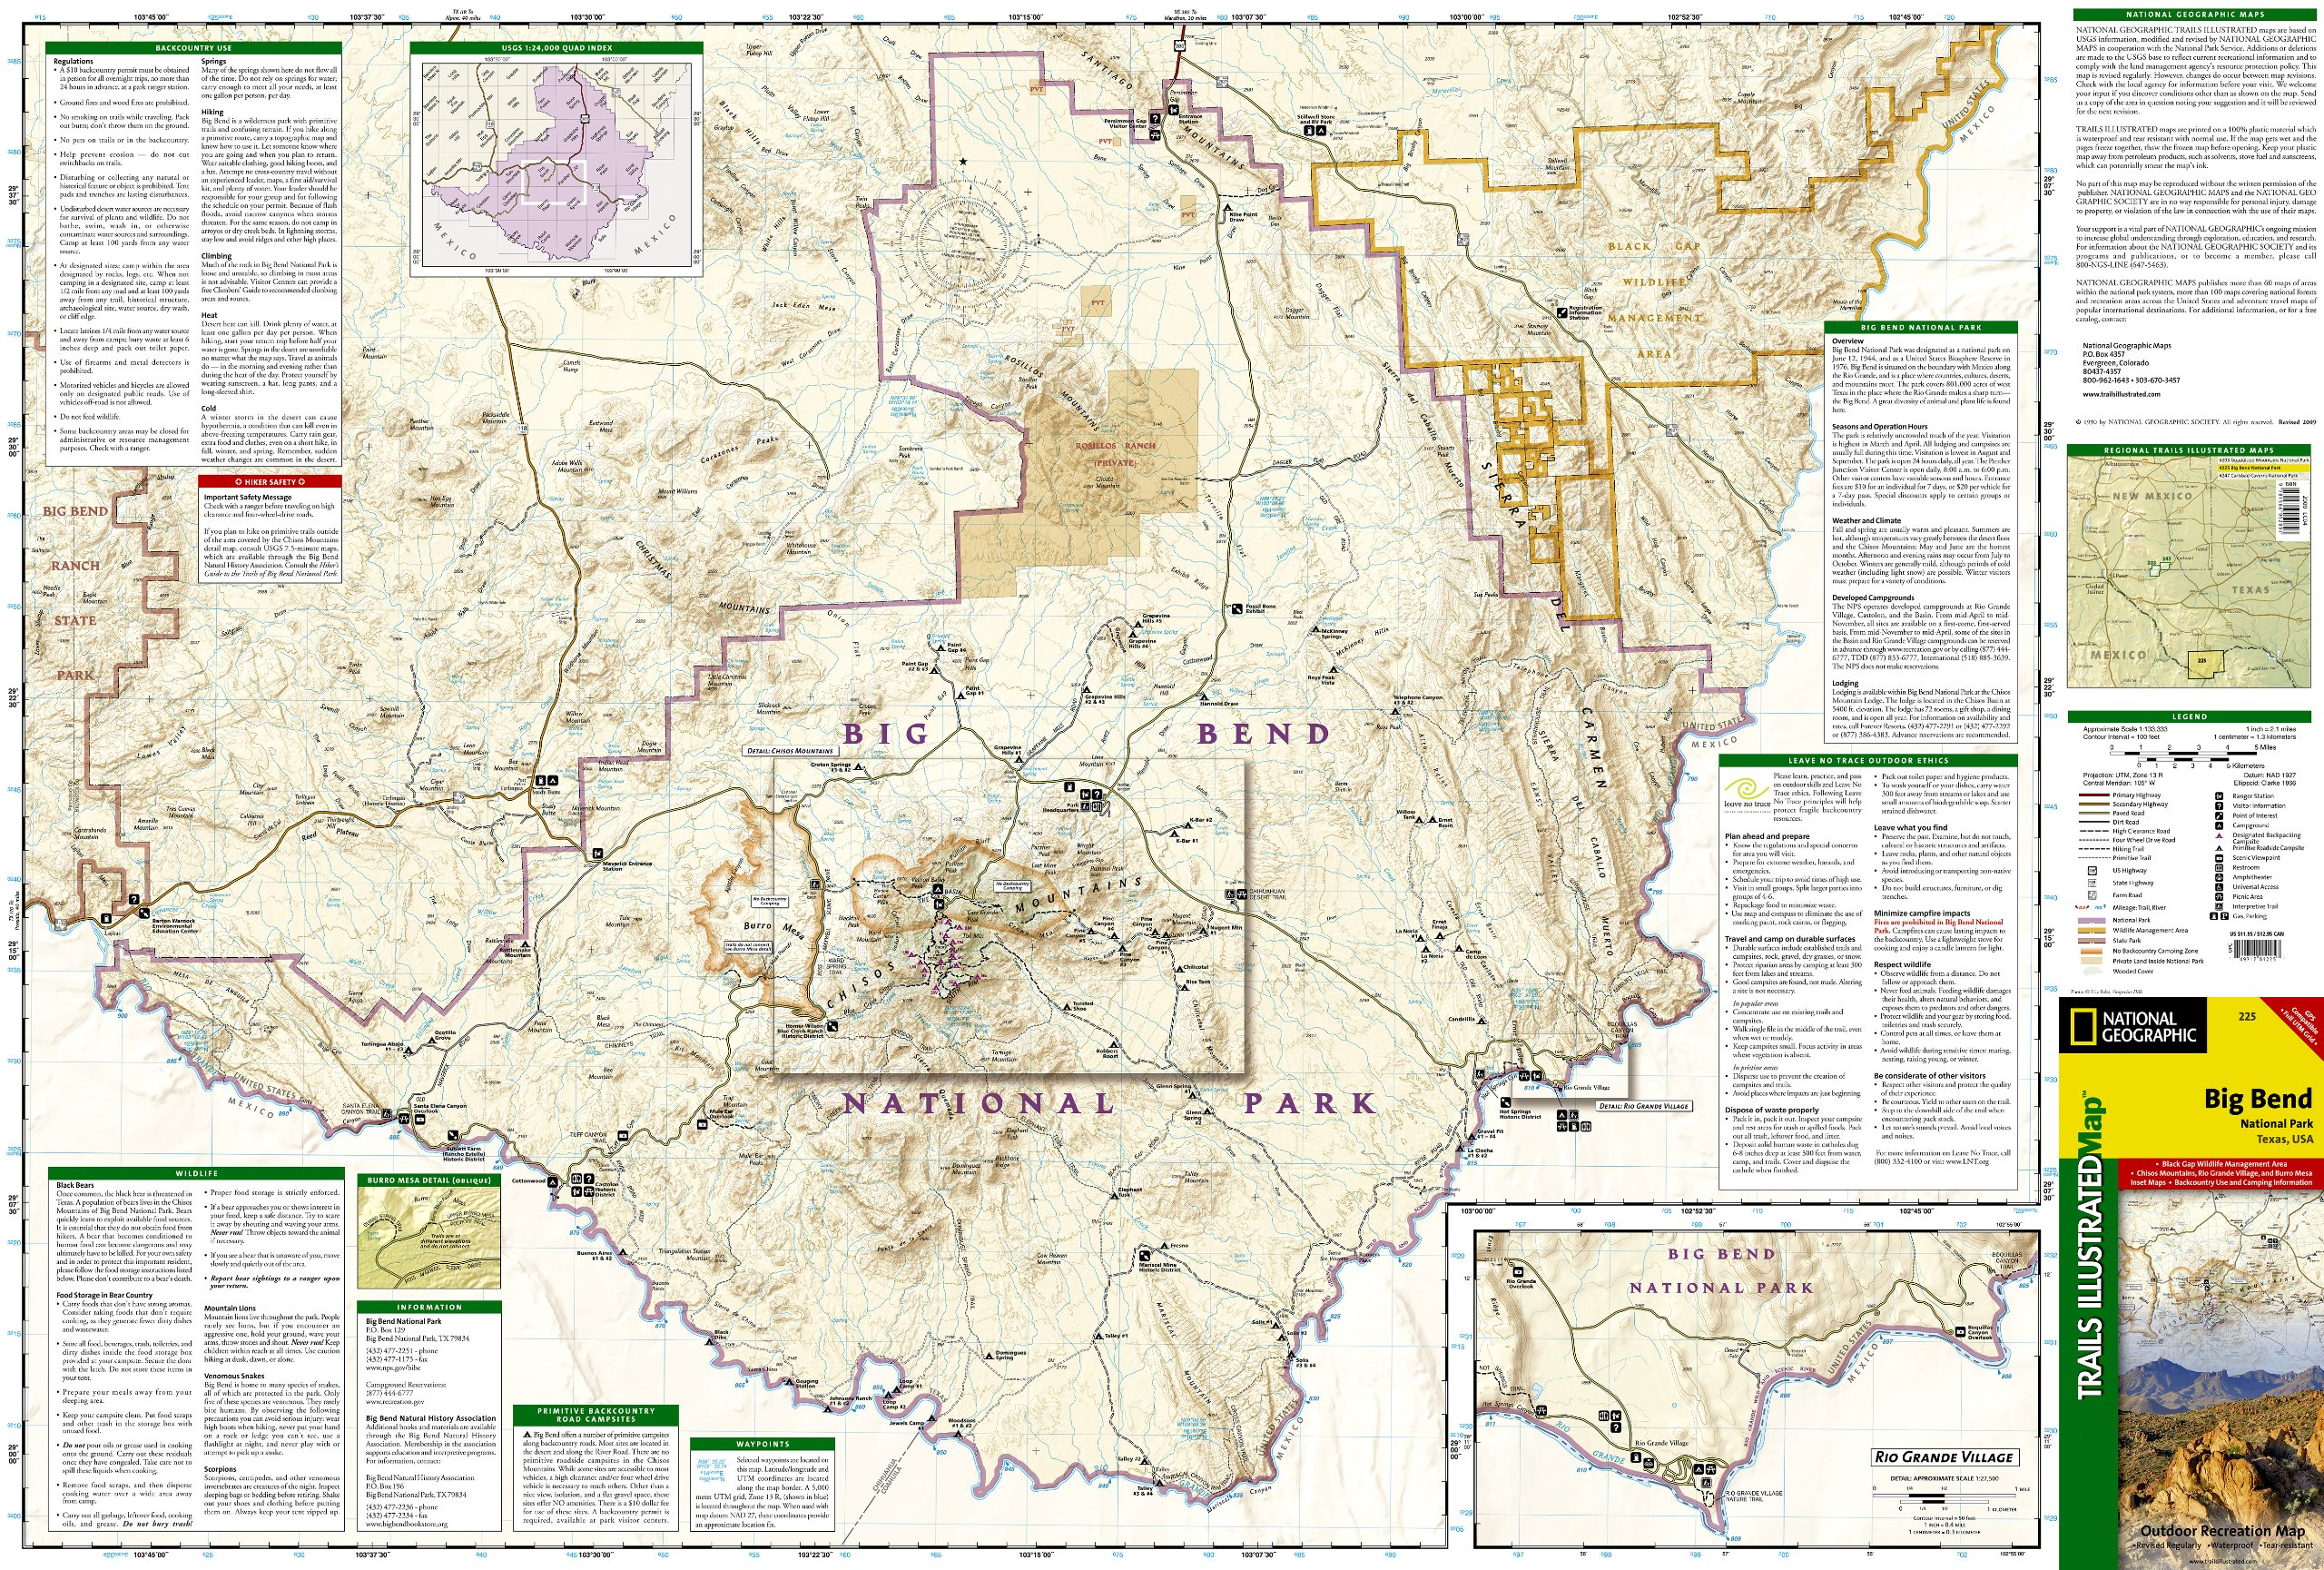 Big Bend National Park National Geographic Trails Illustrated Map - Big bend national park map us